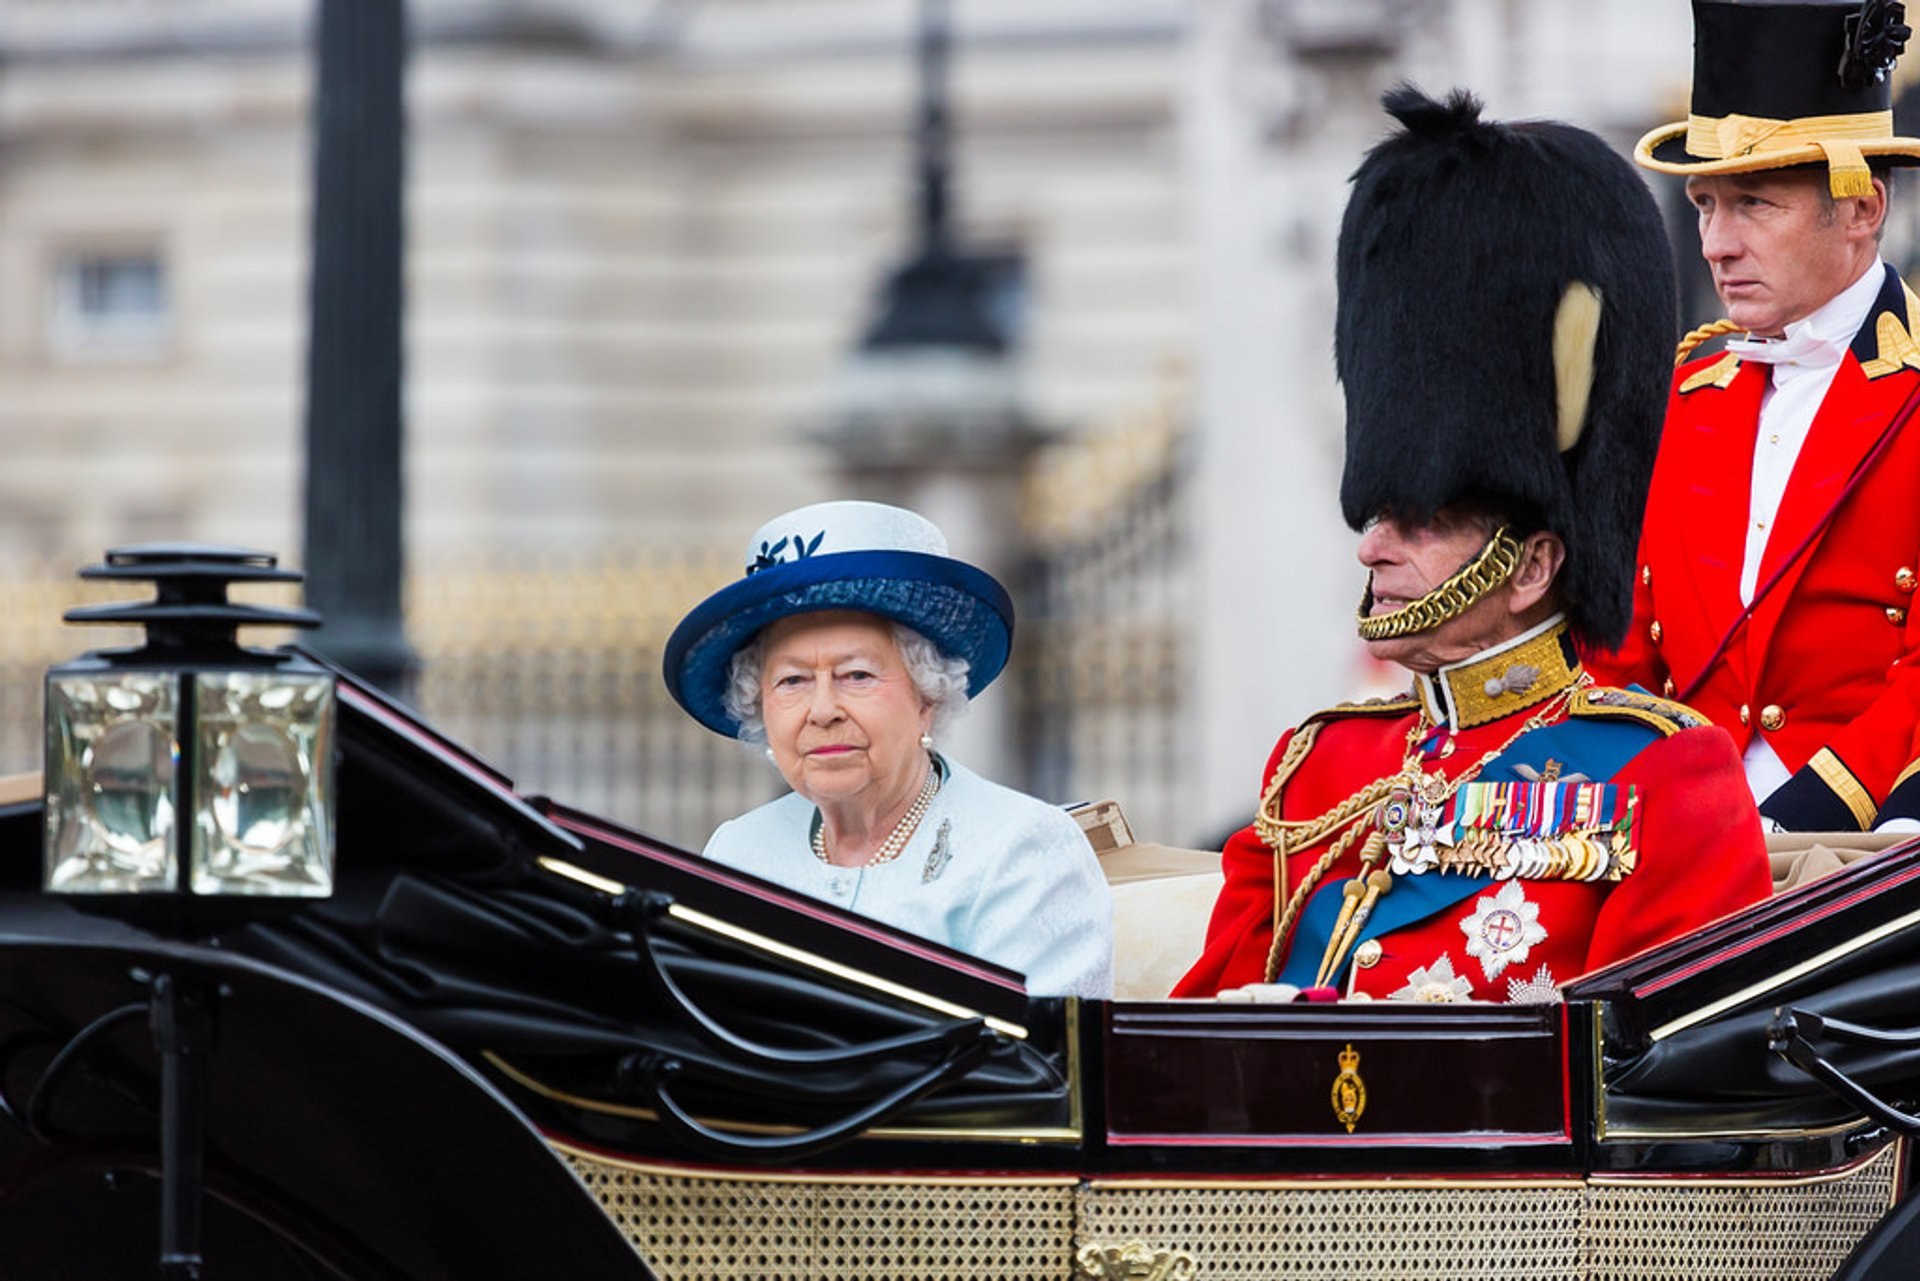 Trooping the Colour & The Queen's Birthday Parade in London 2020 - Best Time